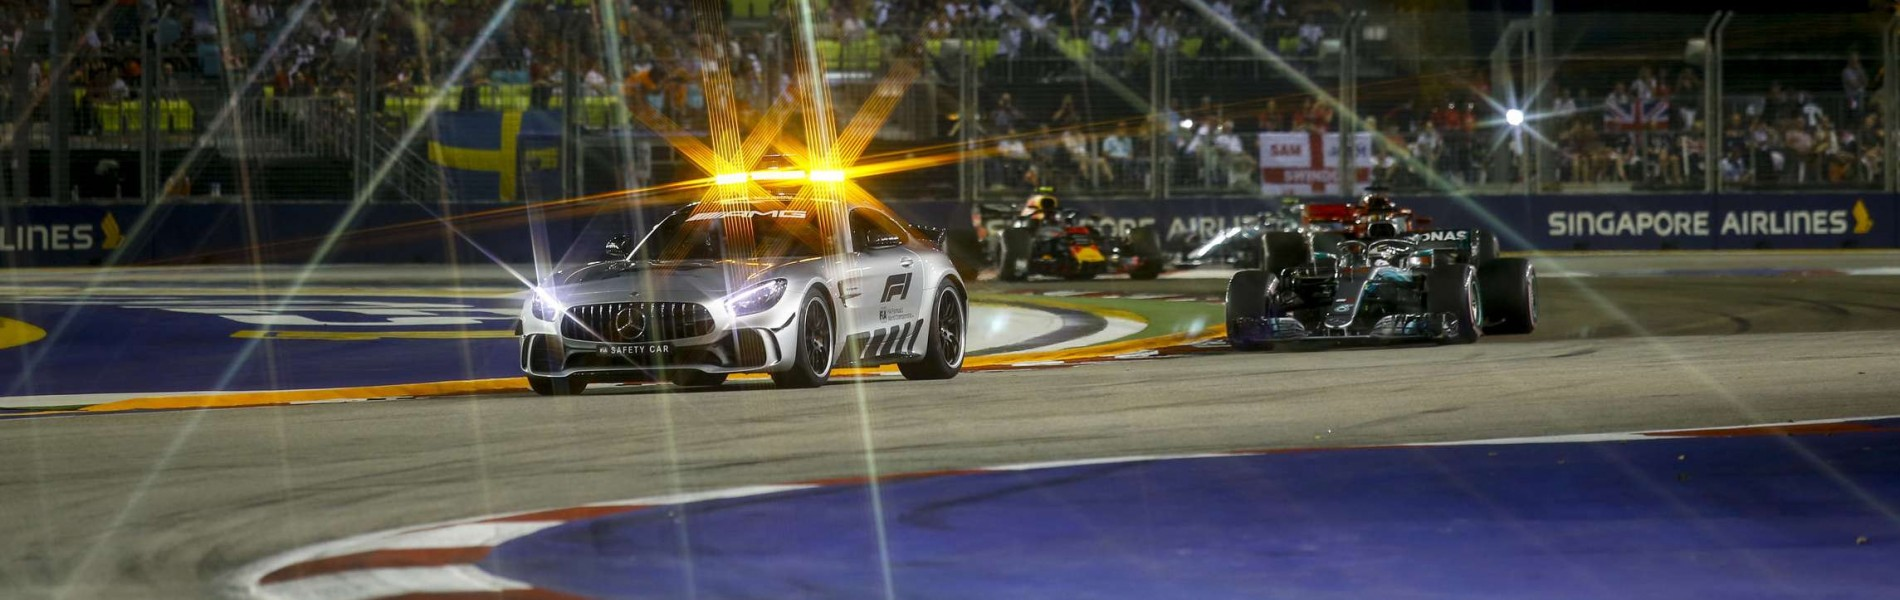 Sunday images from the 2018 Singapore Grand Prix